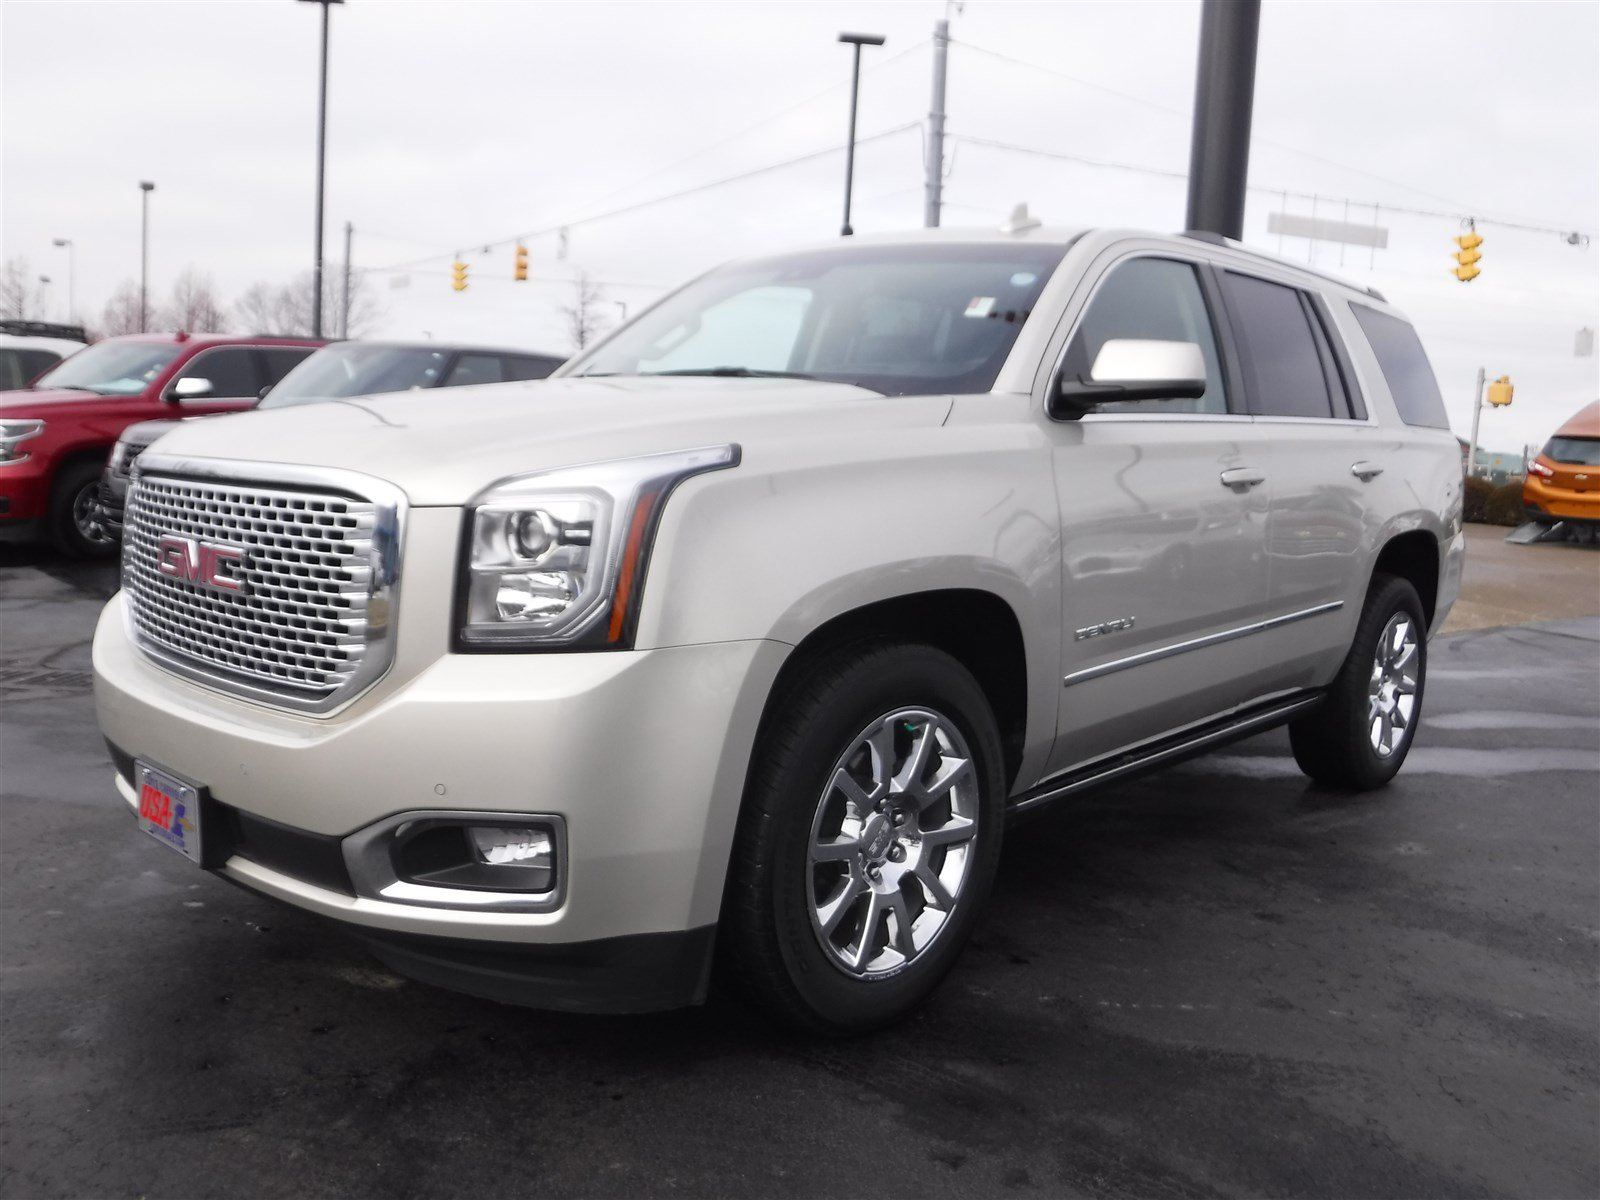 at even be of on gmc mile the rst denali times quarter car mid perfect how suv second tahoe will depending least old high maybe chevrolet aggressively capable performance